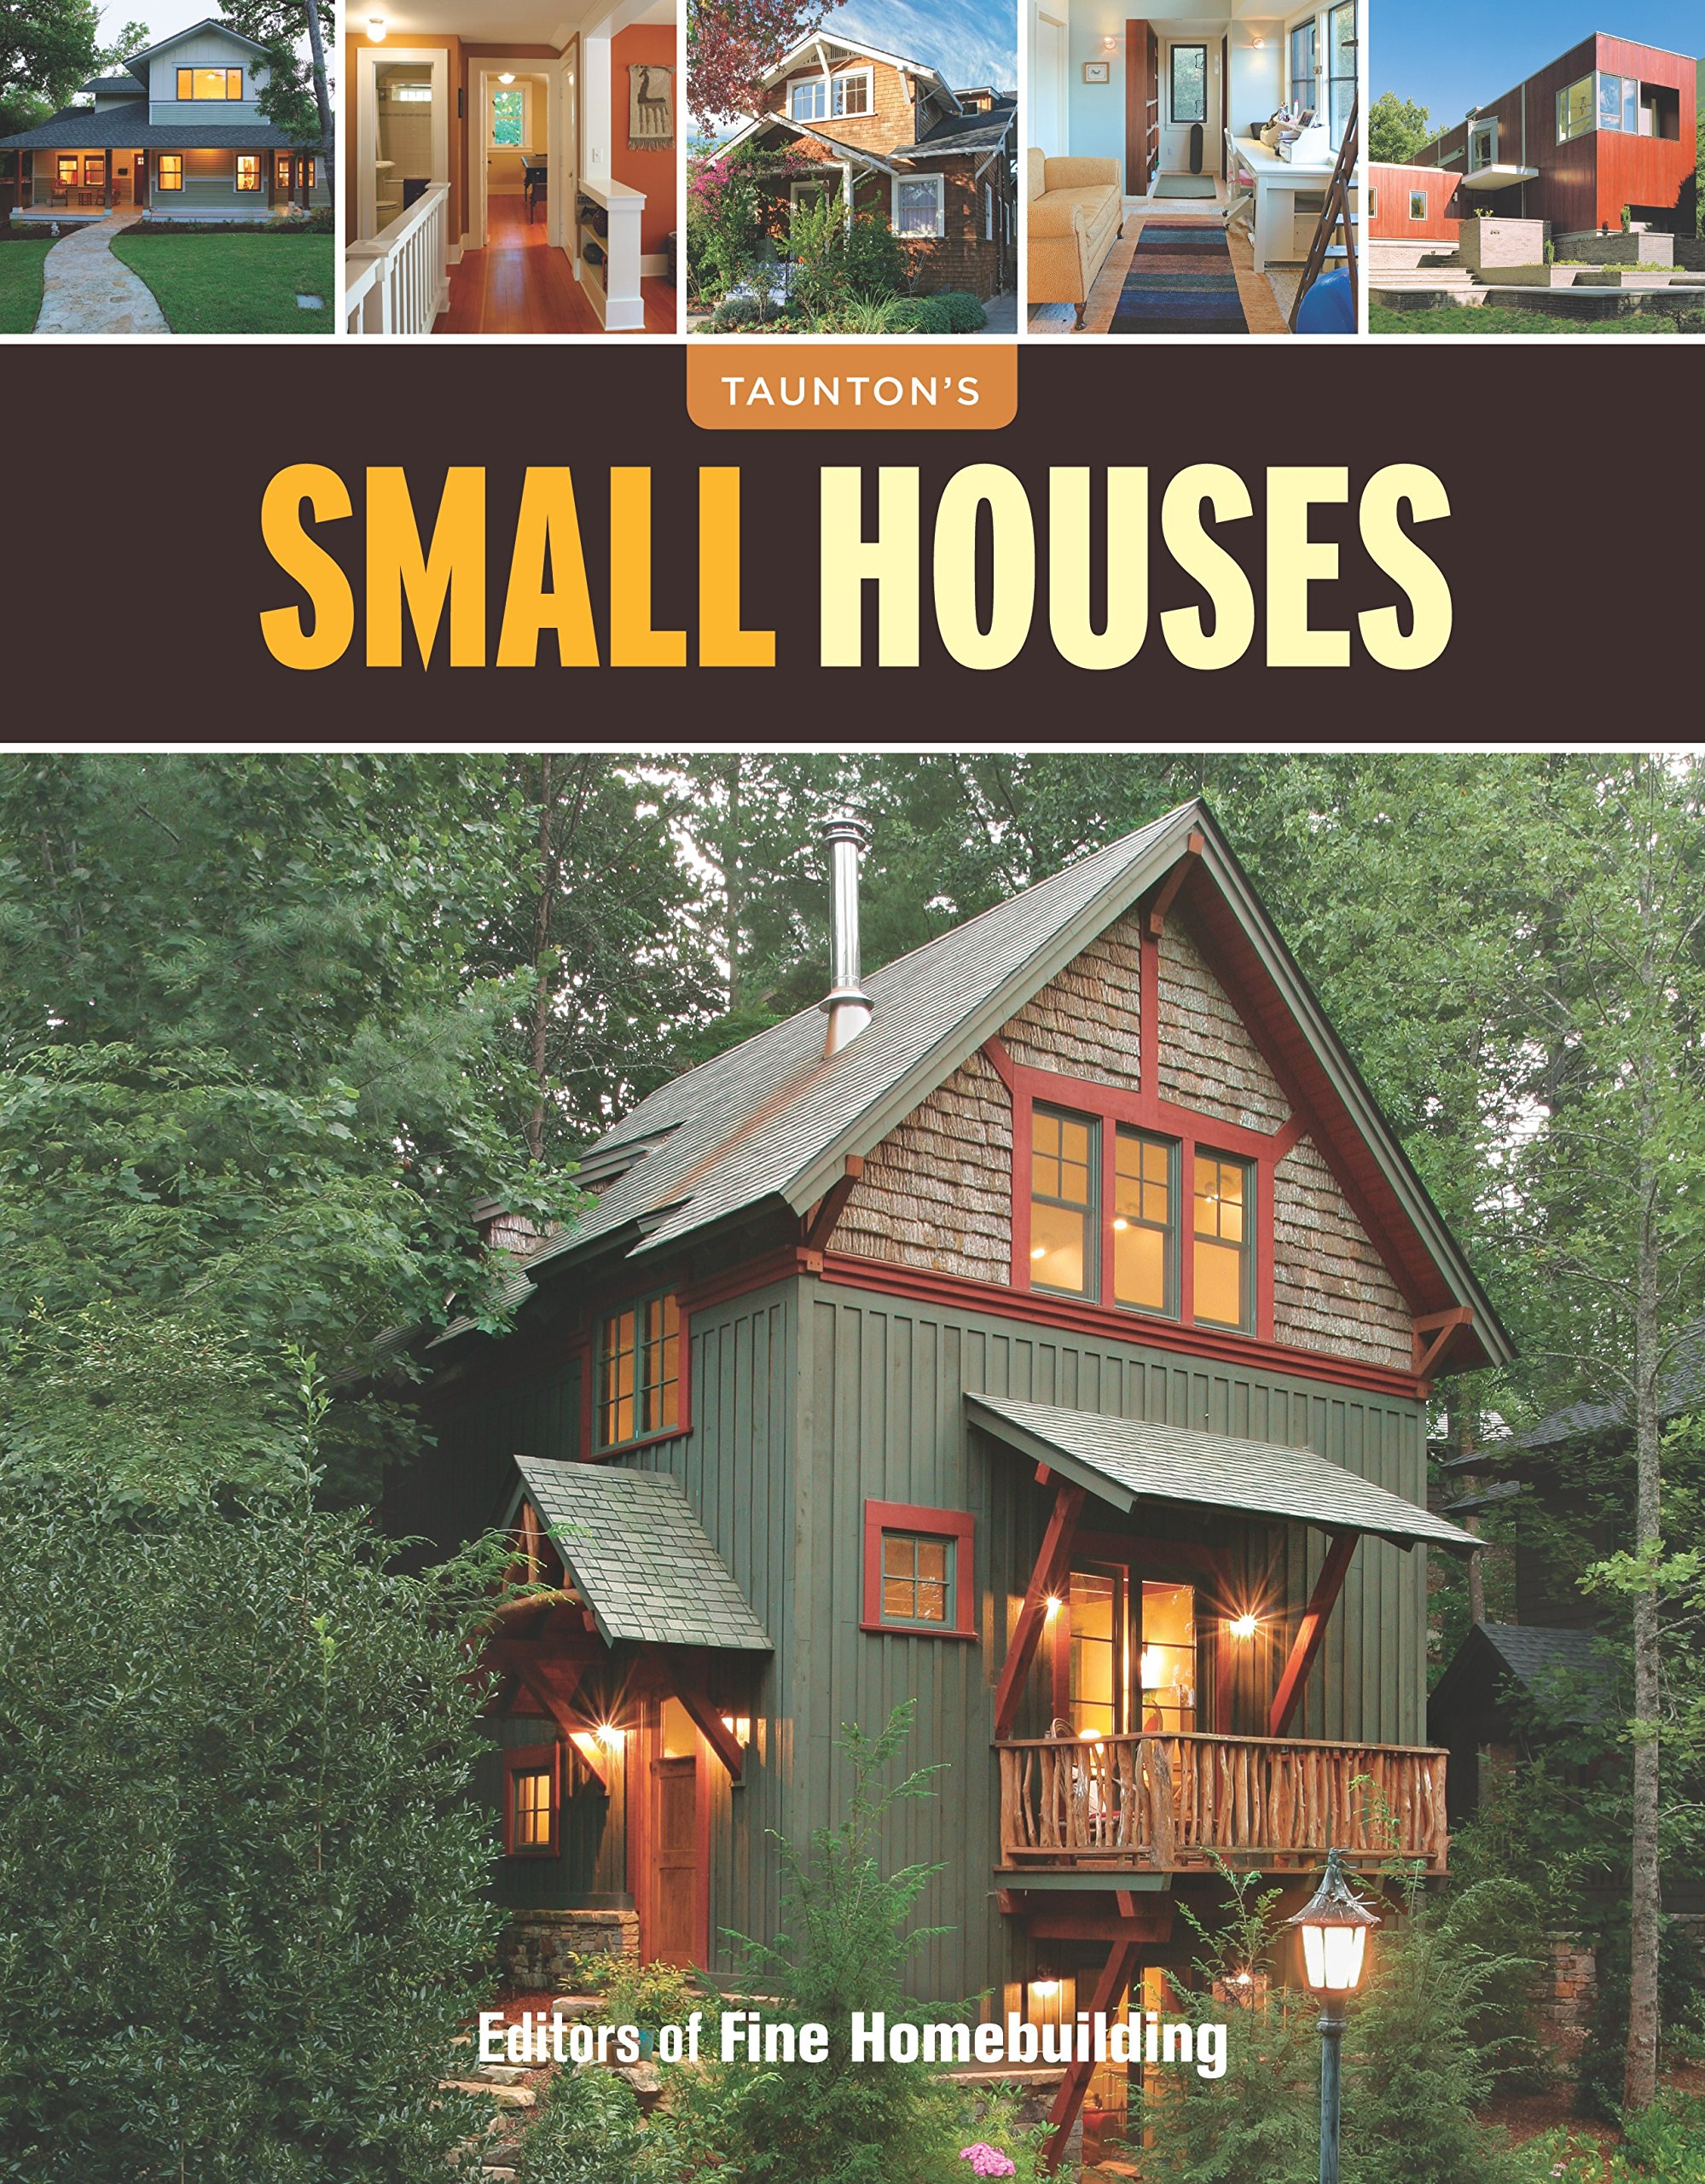 Small Houses (Great Houses): Editors of Fine Homebuilding ... on nature house plans, dreams house plans, family house plans, bridge house plans, friends house plans, fishing house plans, life house plans, dogs house plans, yoga house plans, funny house plans, basketball house plans, the pearl house plans, painting house plans, love house plans, personal house plans, art house plans, water house plans,